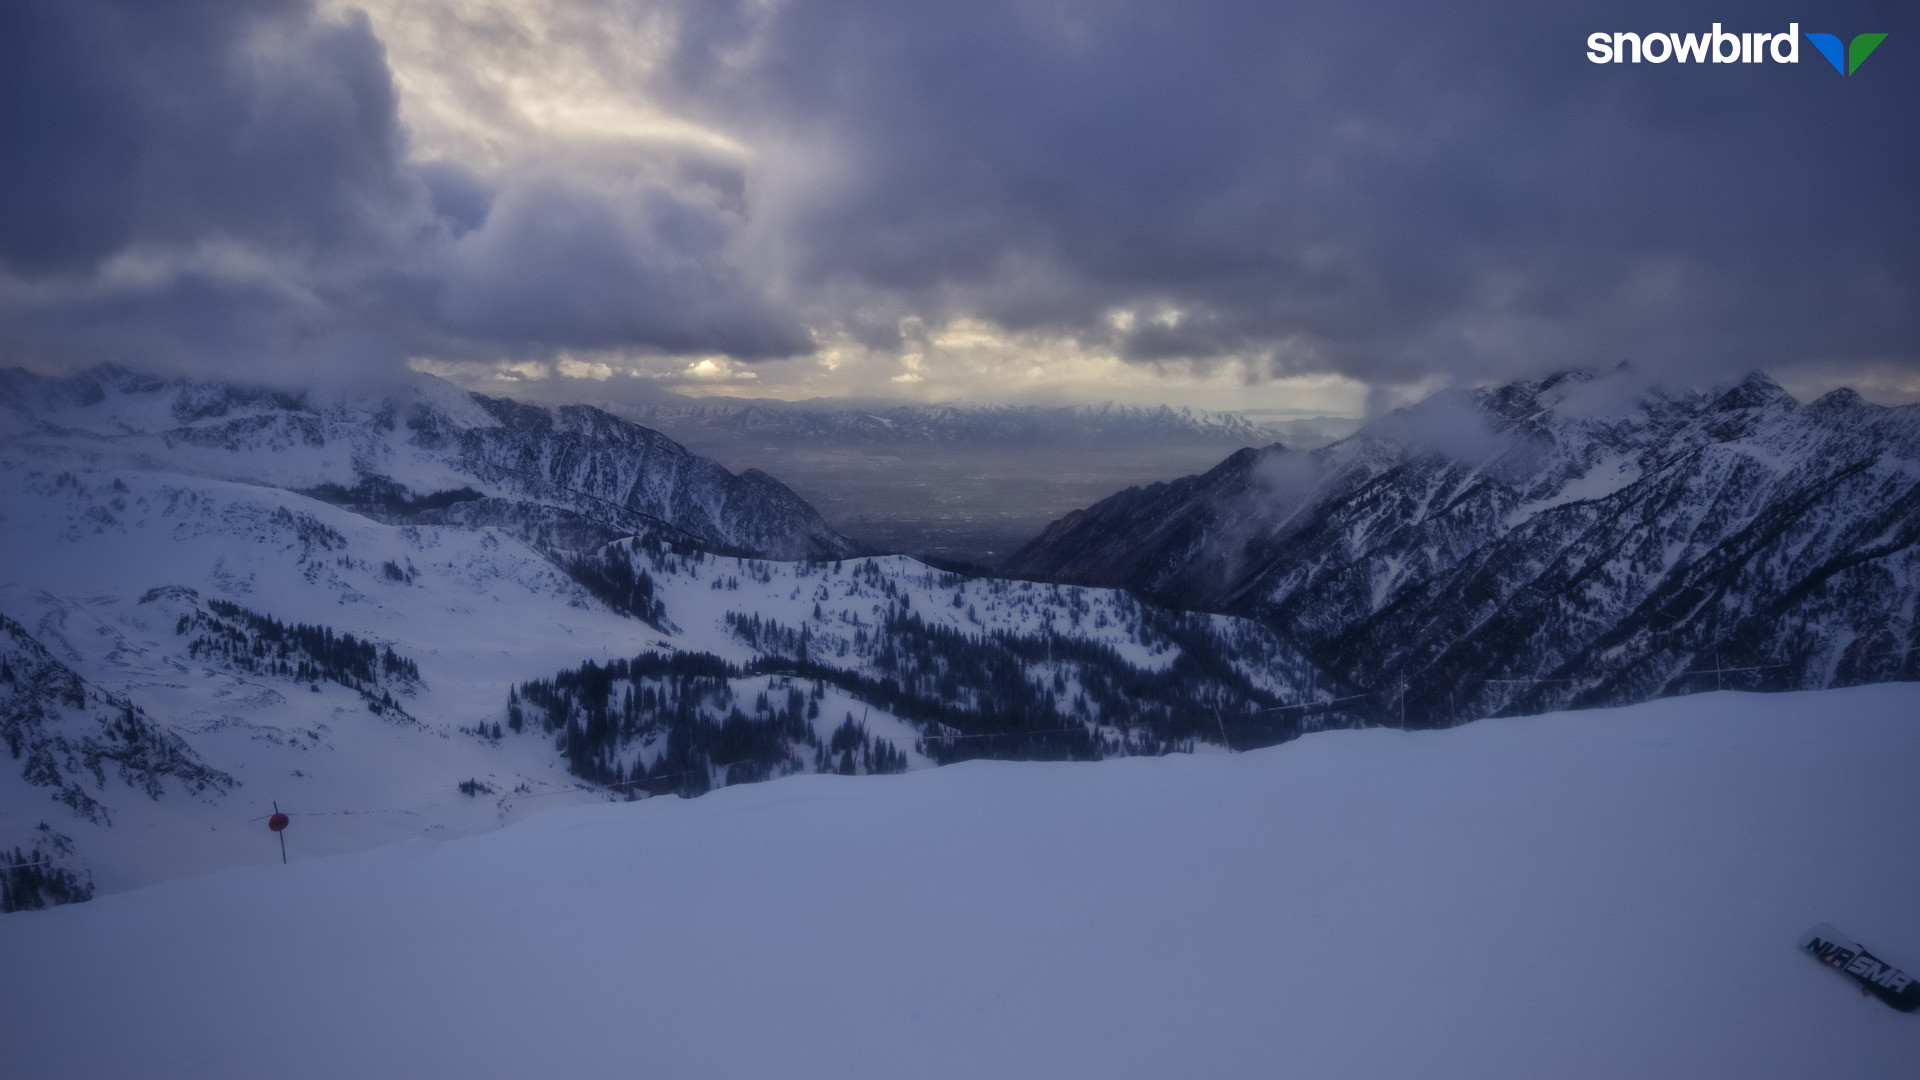 View from Hidden Peak at Snowbird late this afternoon. Current view and 24-hour timelapses are available from http://prismcam.com/demos/snowbird-peaks/.